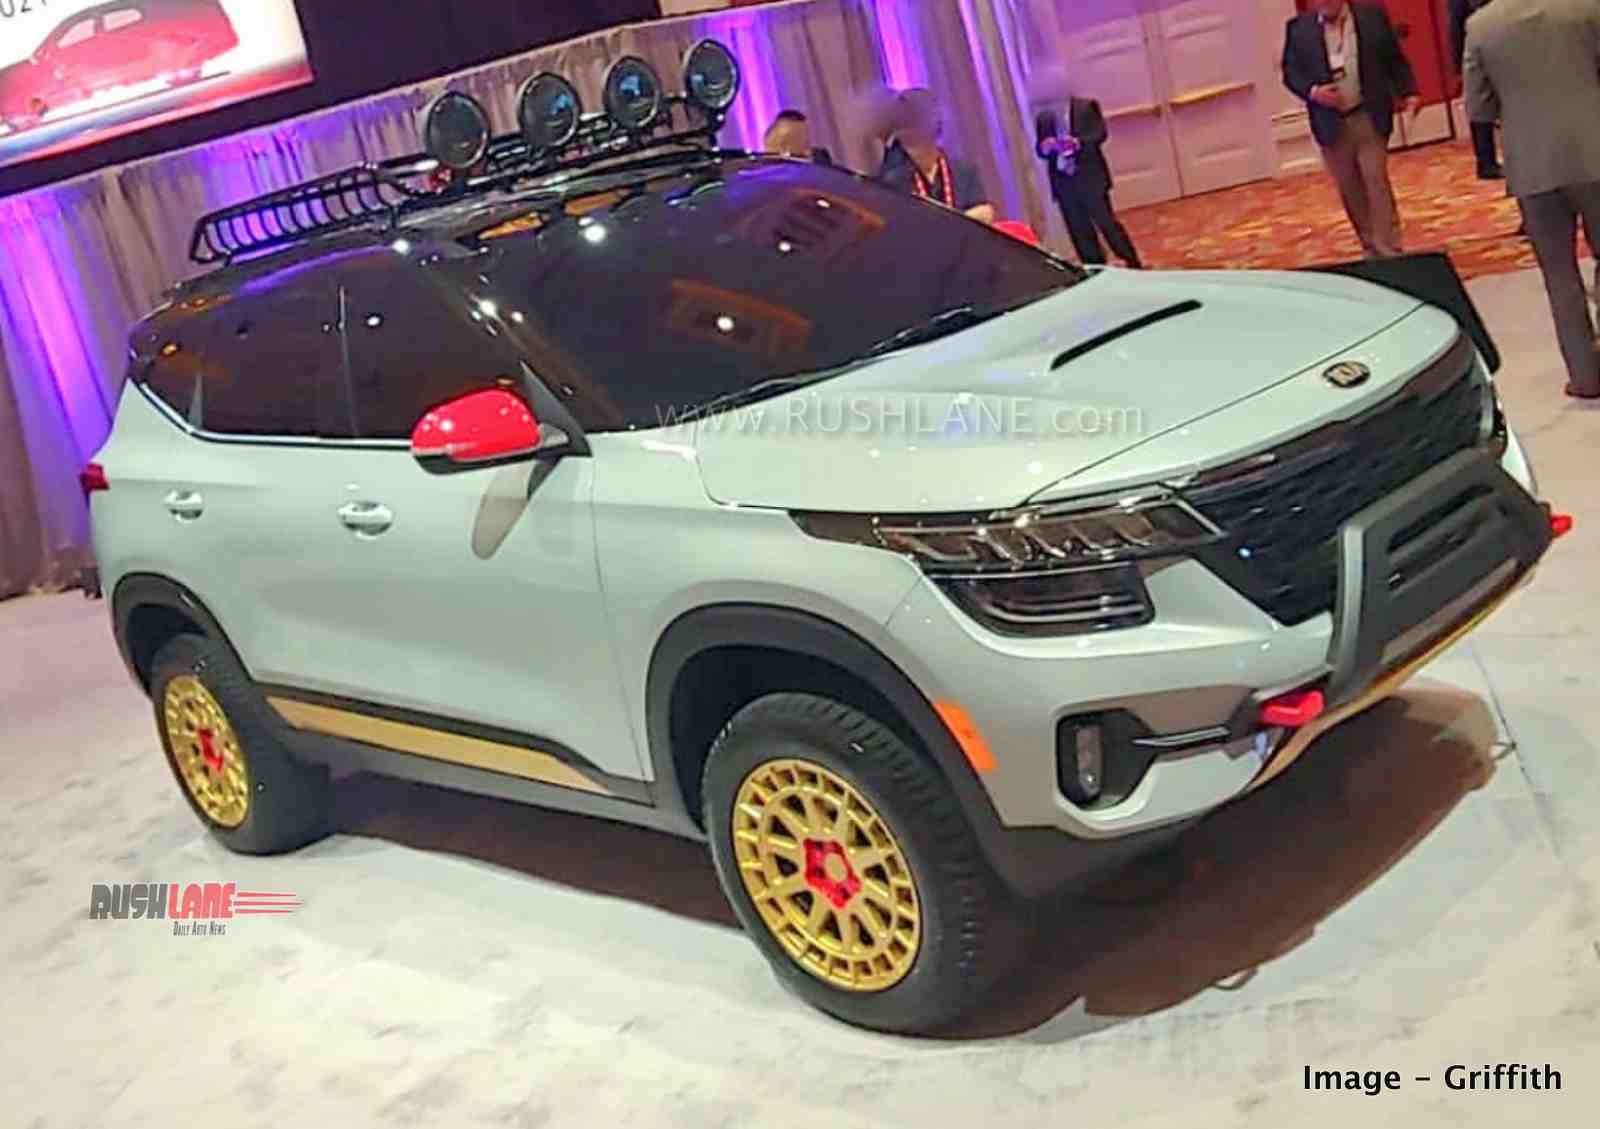 Kia Seltos off-road modified variant